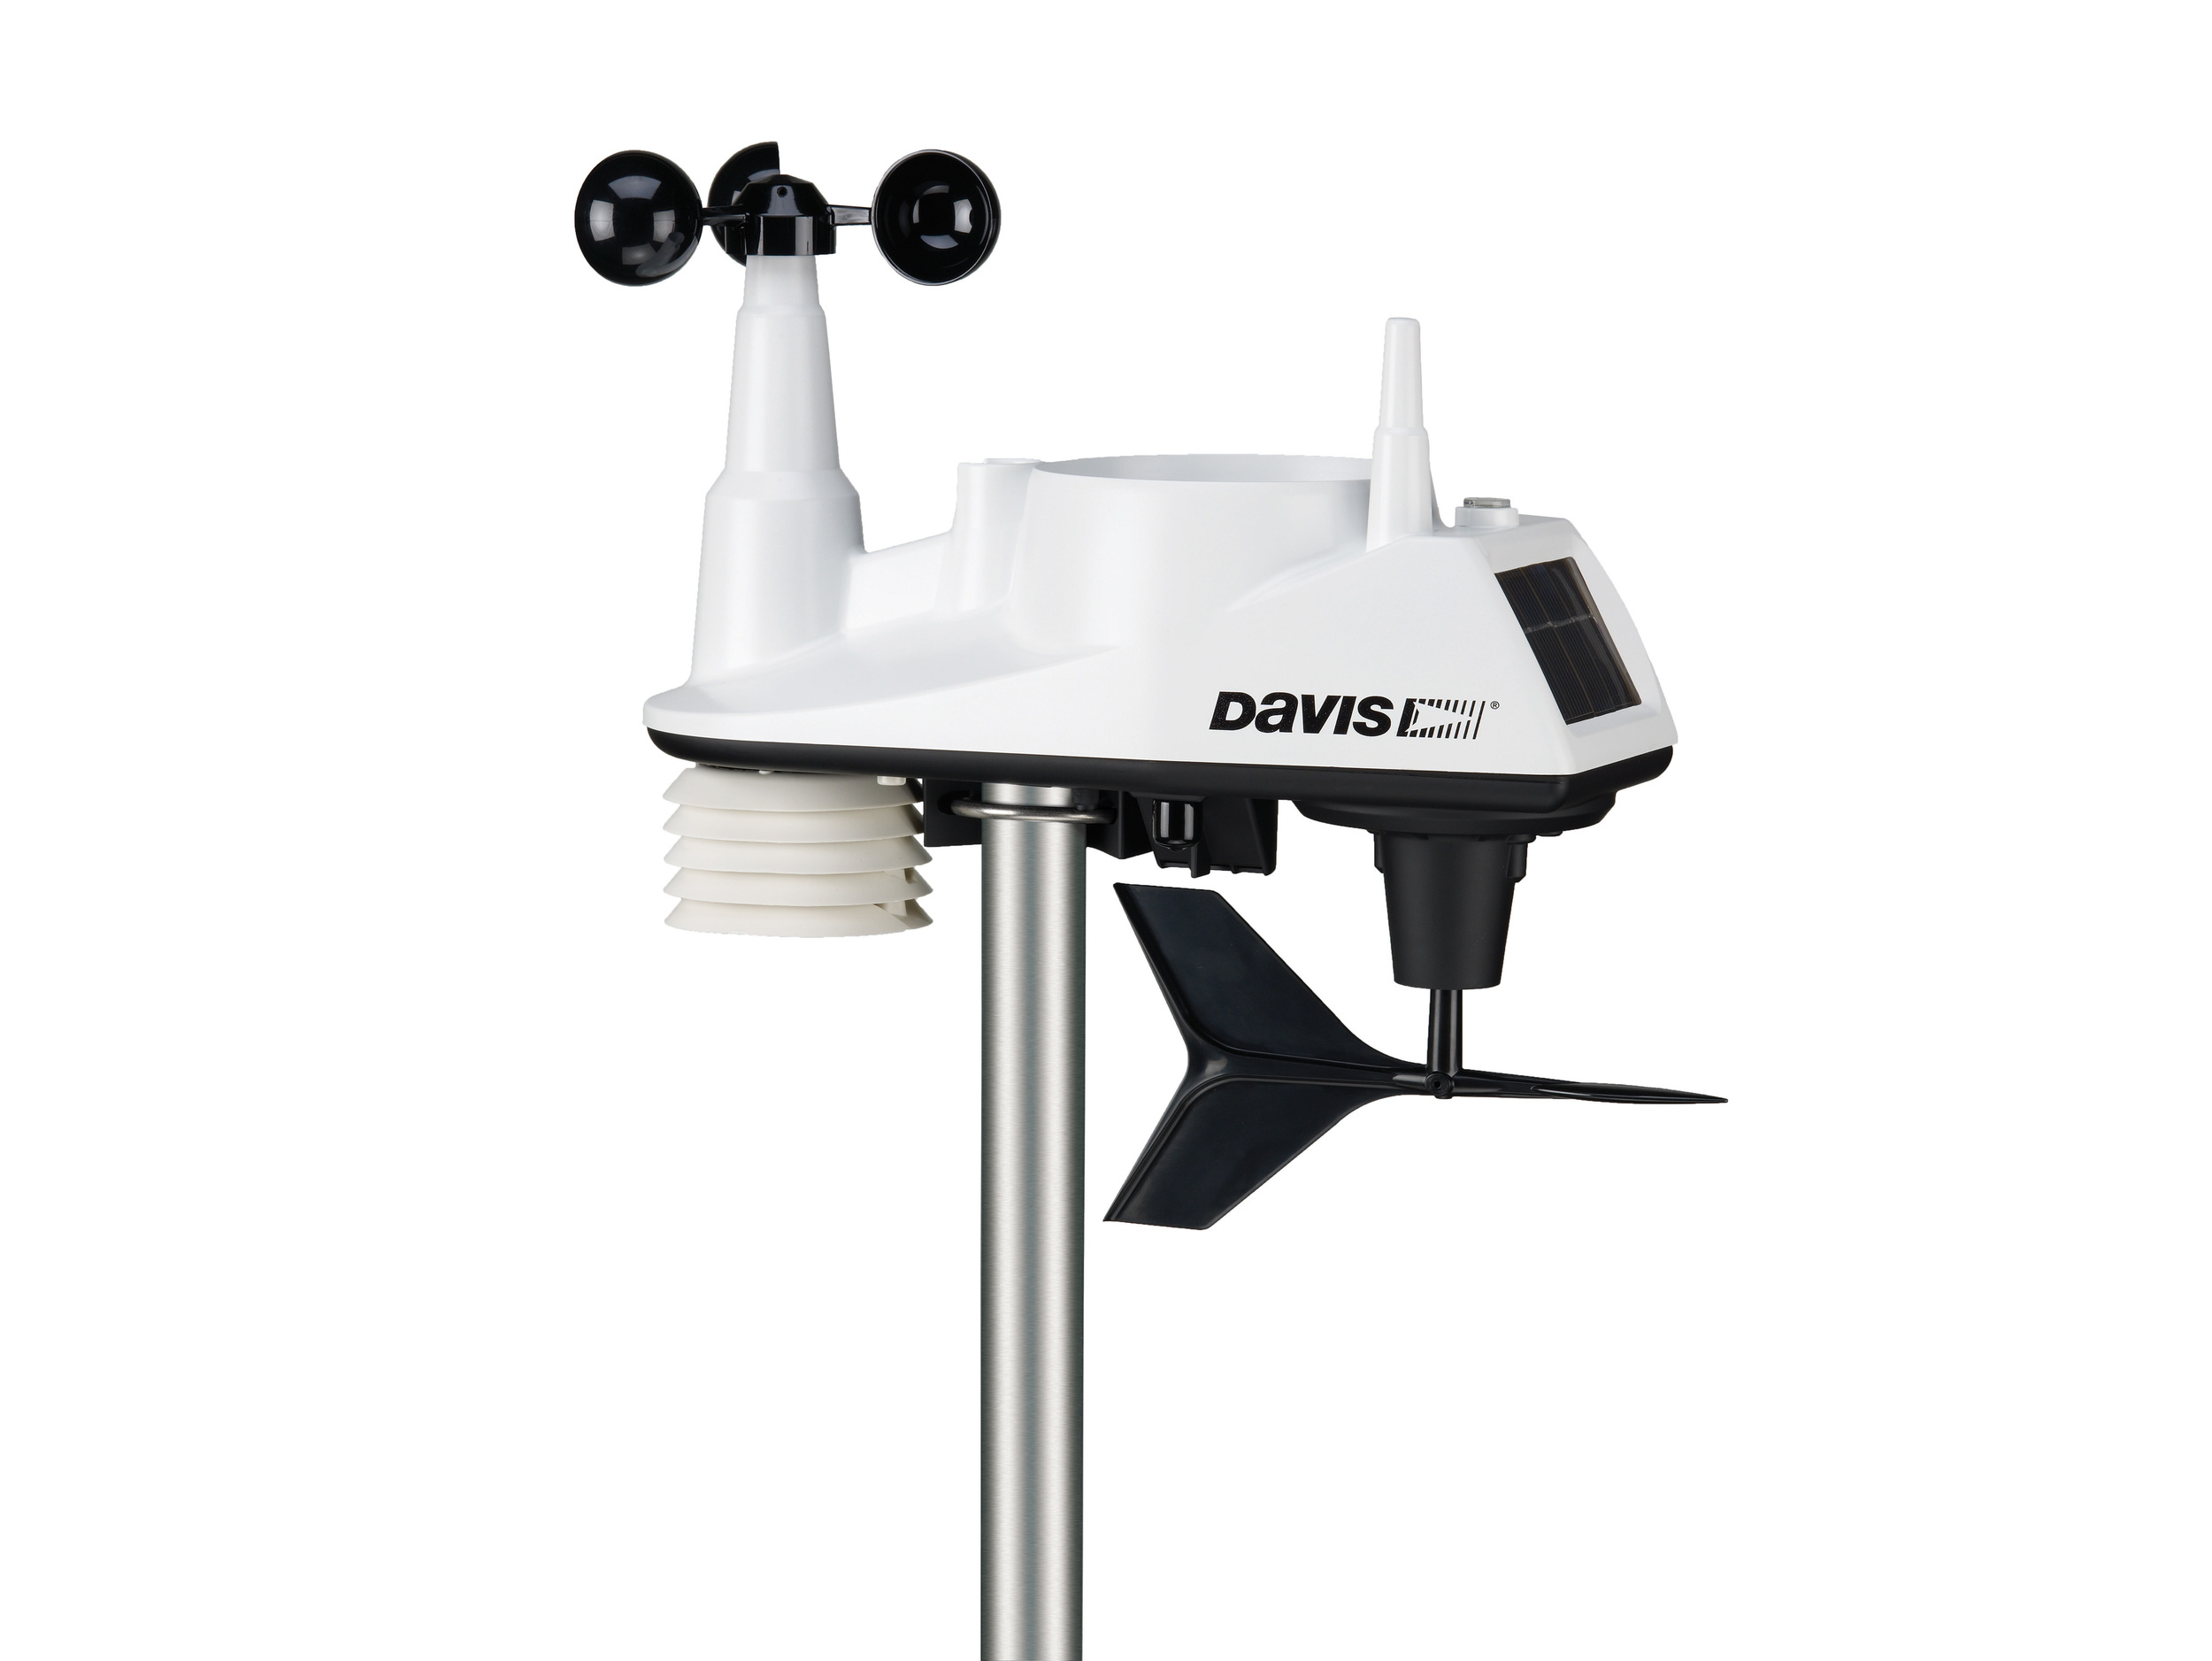 A personal weather station like this Vantage Vue 6250 [ Amazon link ] measures temperature, rainfall, windspeed, and other weather conditions and transmits the measurements wirelessly to a console in your home.  Source:  Davis InstrumentsVanage Vue